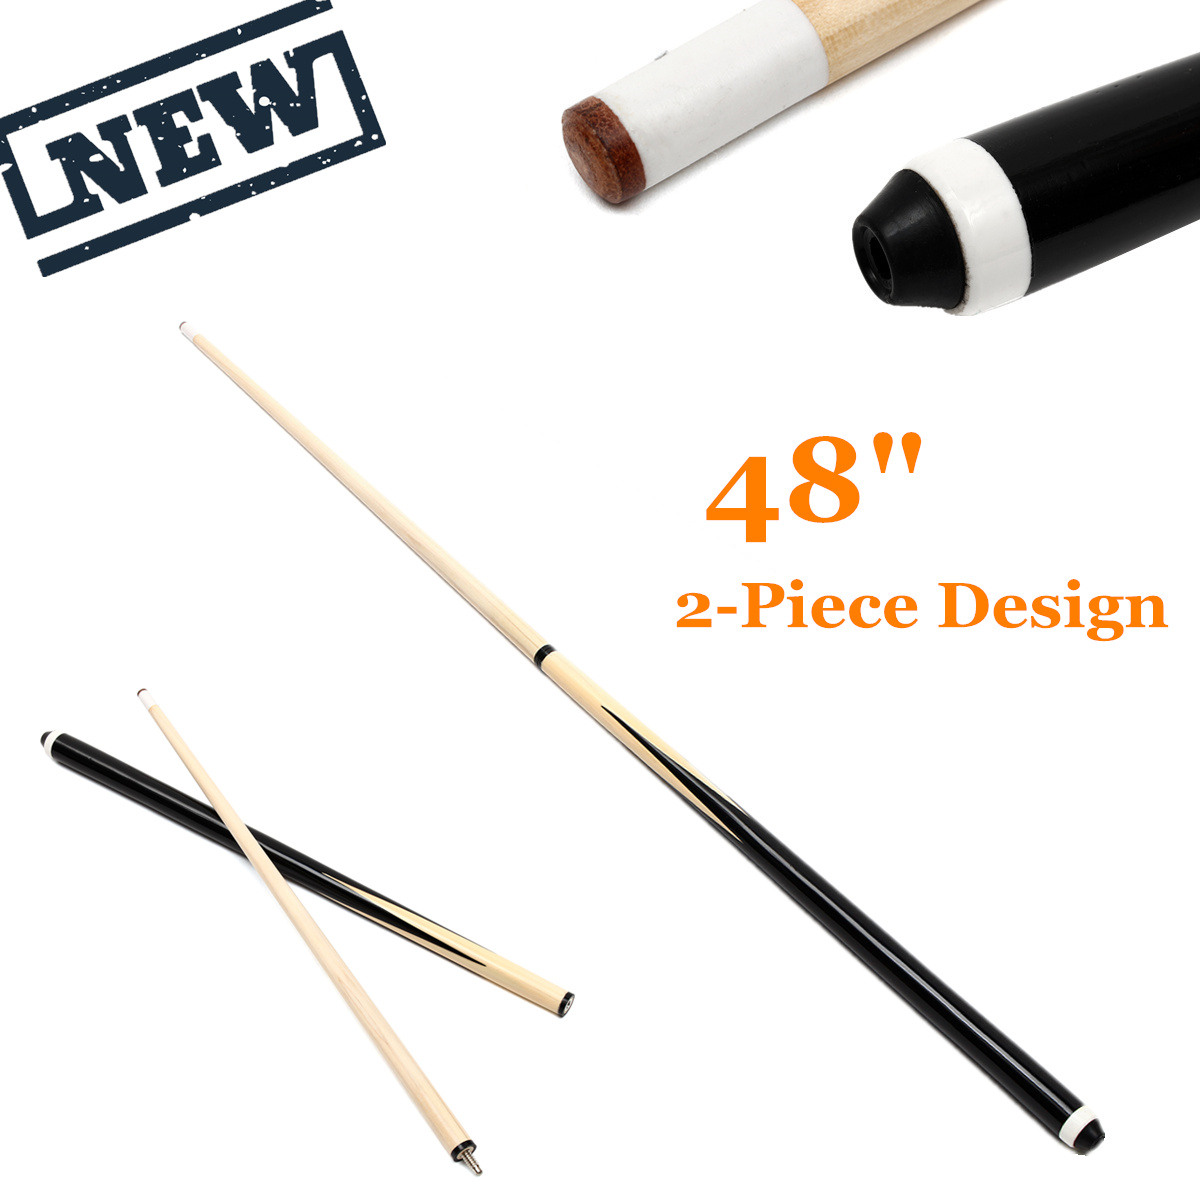 120cm 1/2 Structure 1Pcs Wooden Pool Cues Billiard House Bar Pool Cues Sticks Entertainment Snooker Accessories Billiard Tools